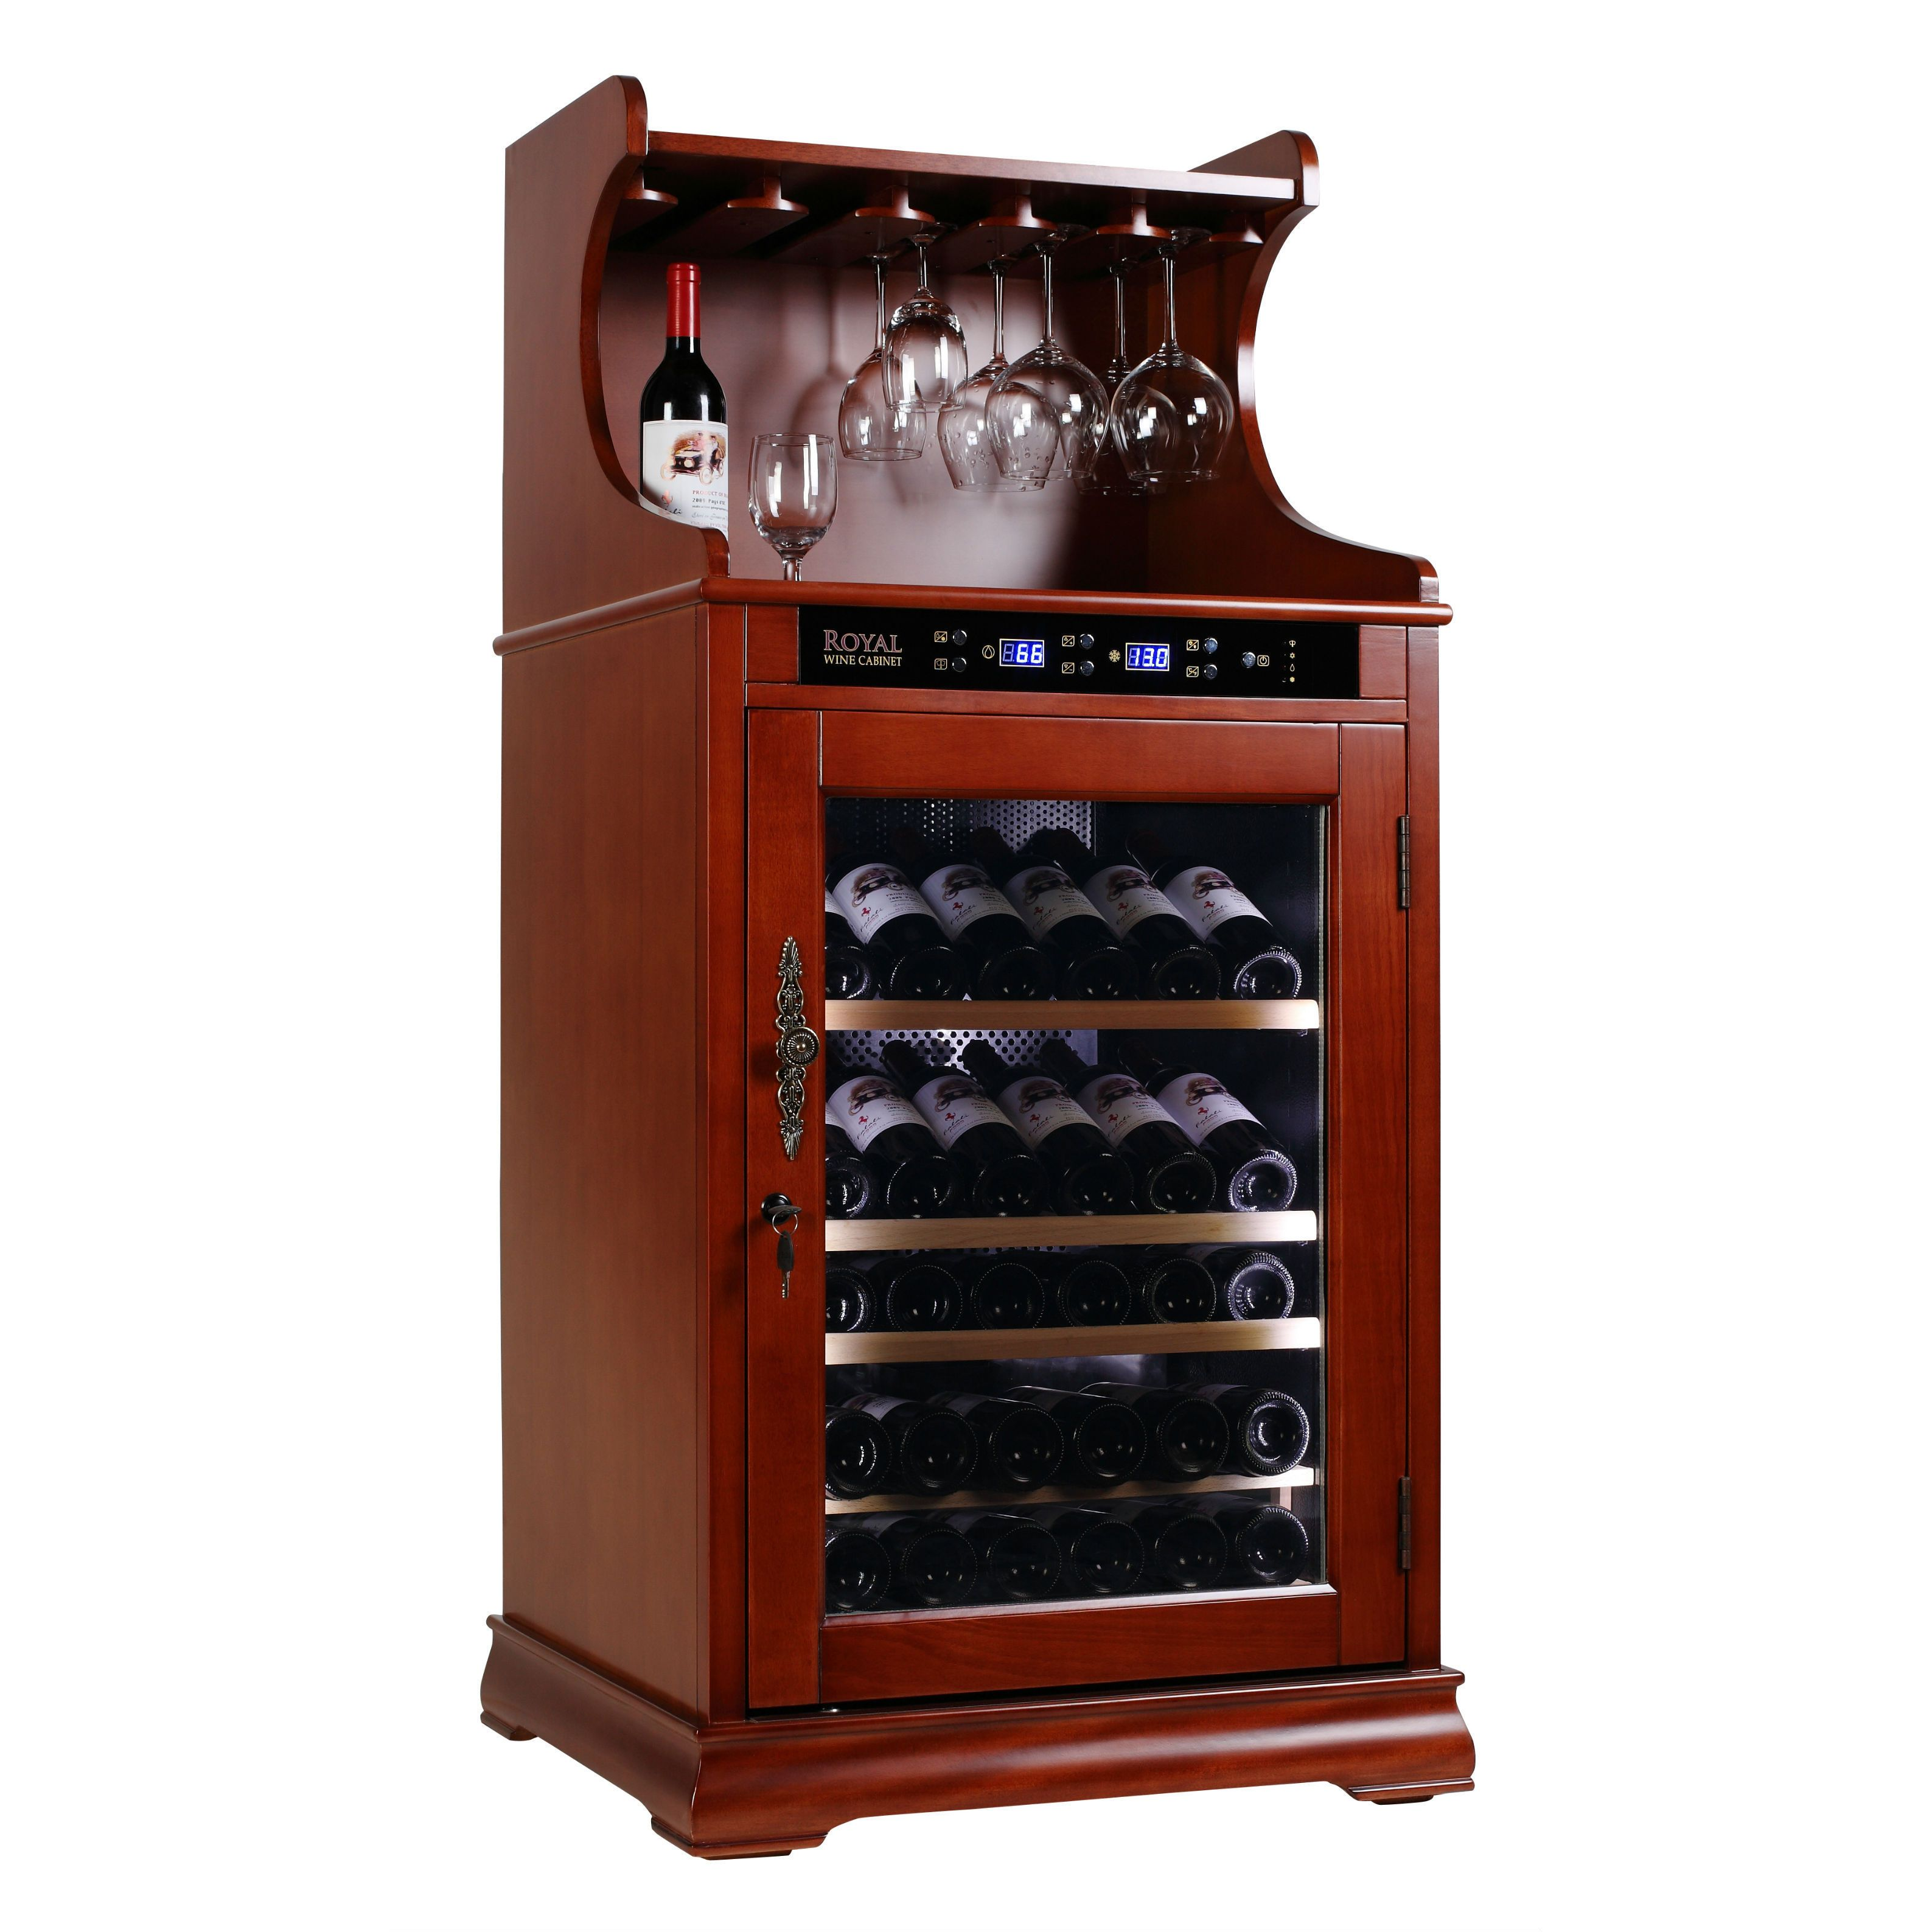 royal cave 138e 72 bottle constant temperature wine cellar cabinet and rack wine cellars and. Black Bedroom Furniture Sets. Home Design Ideas